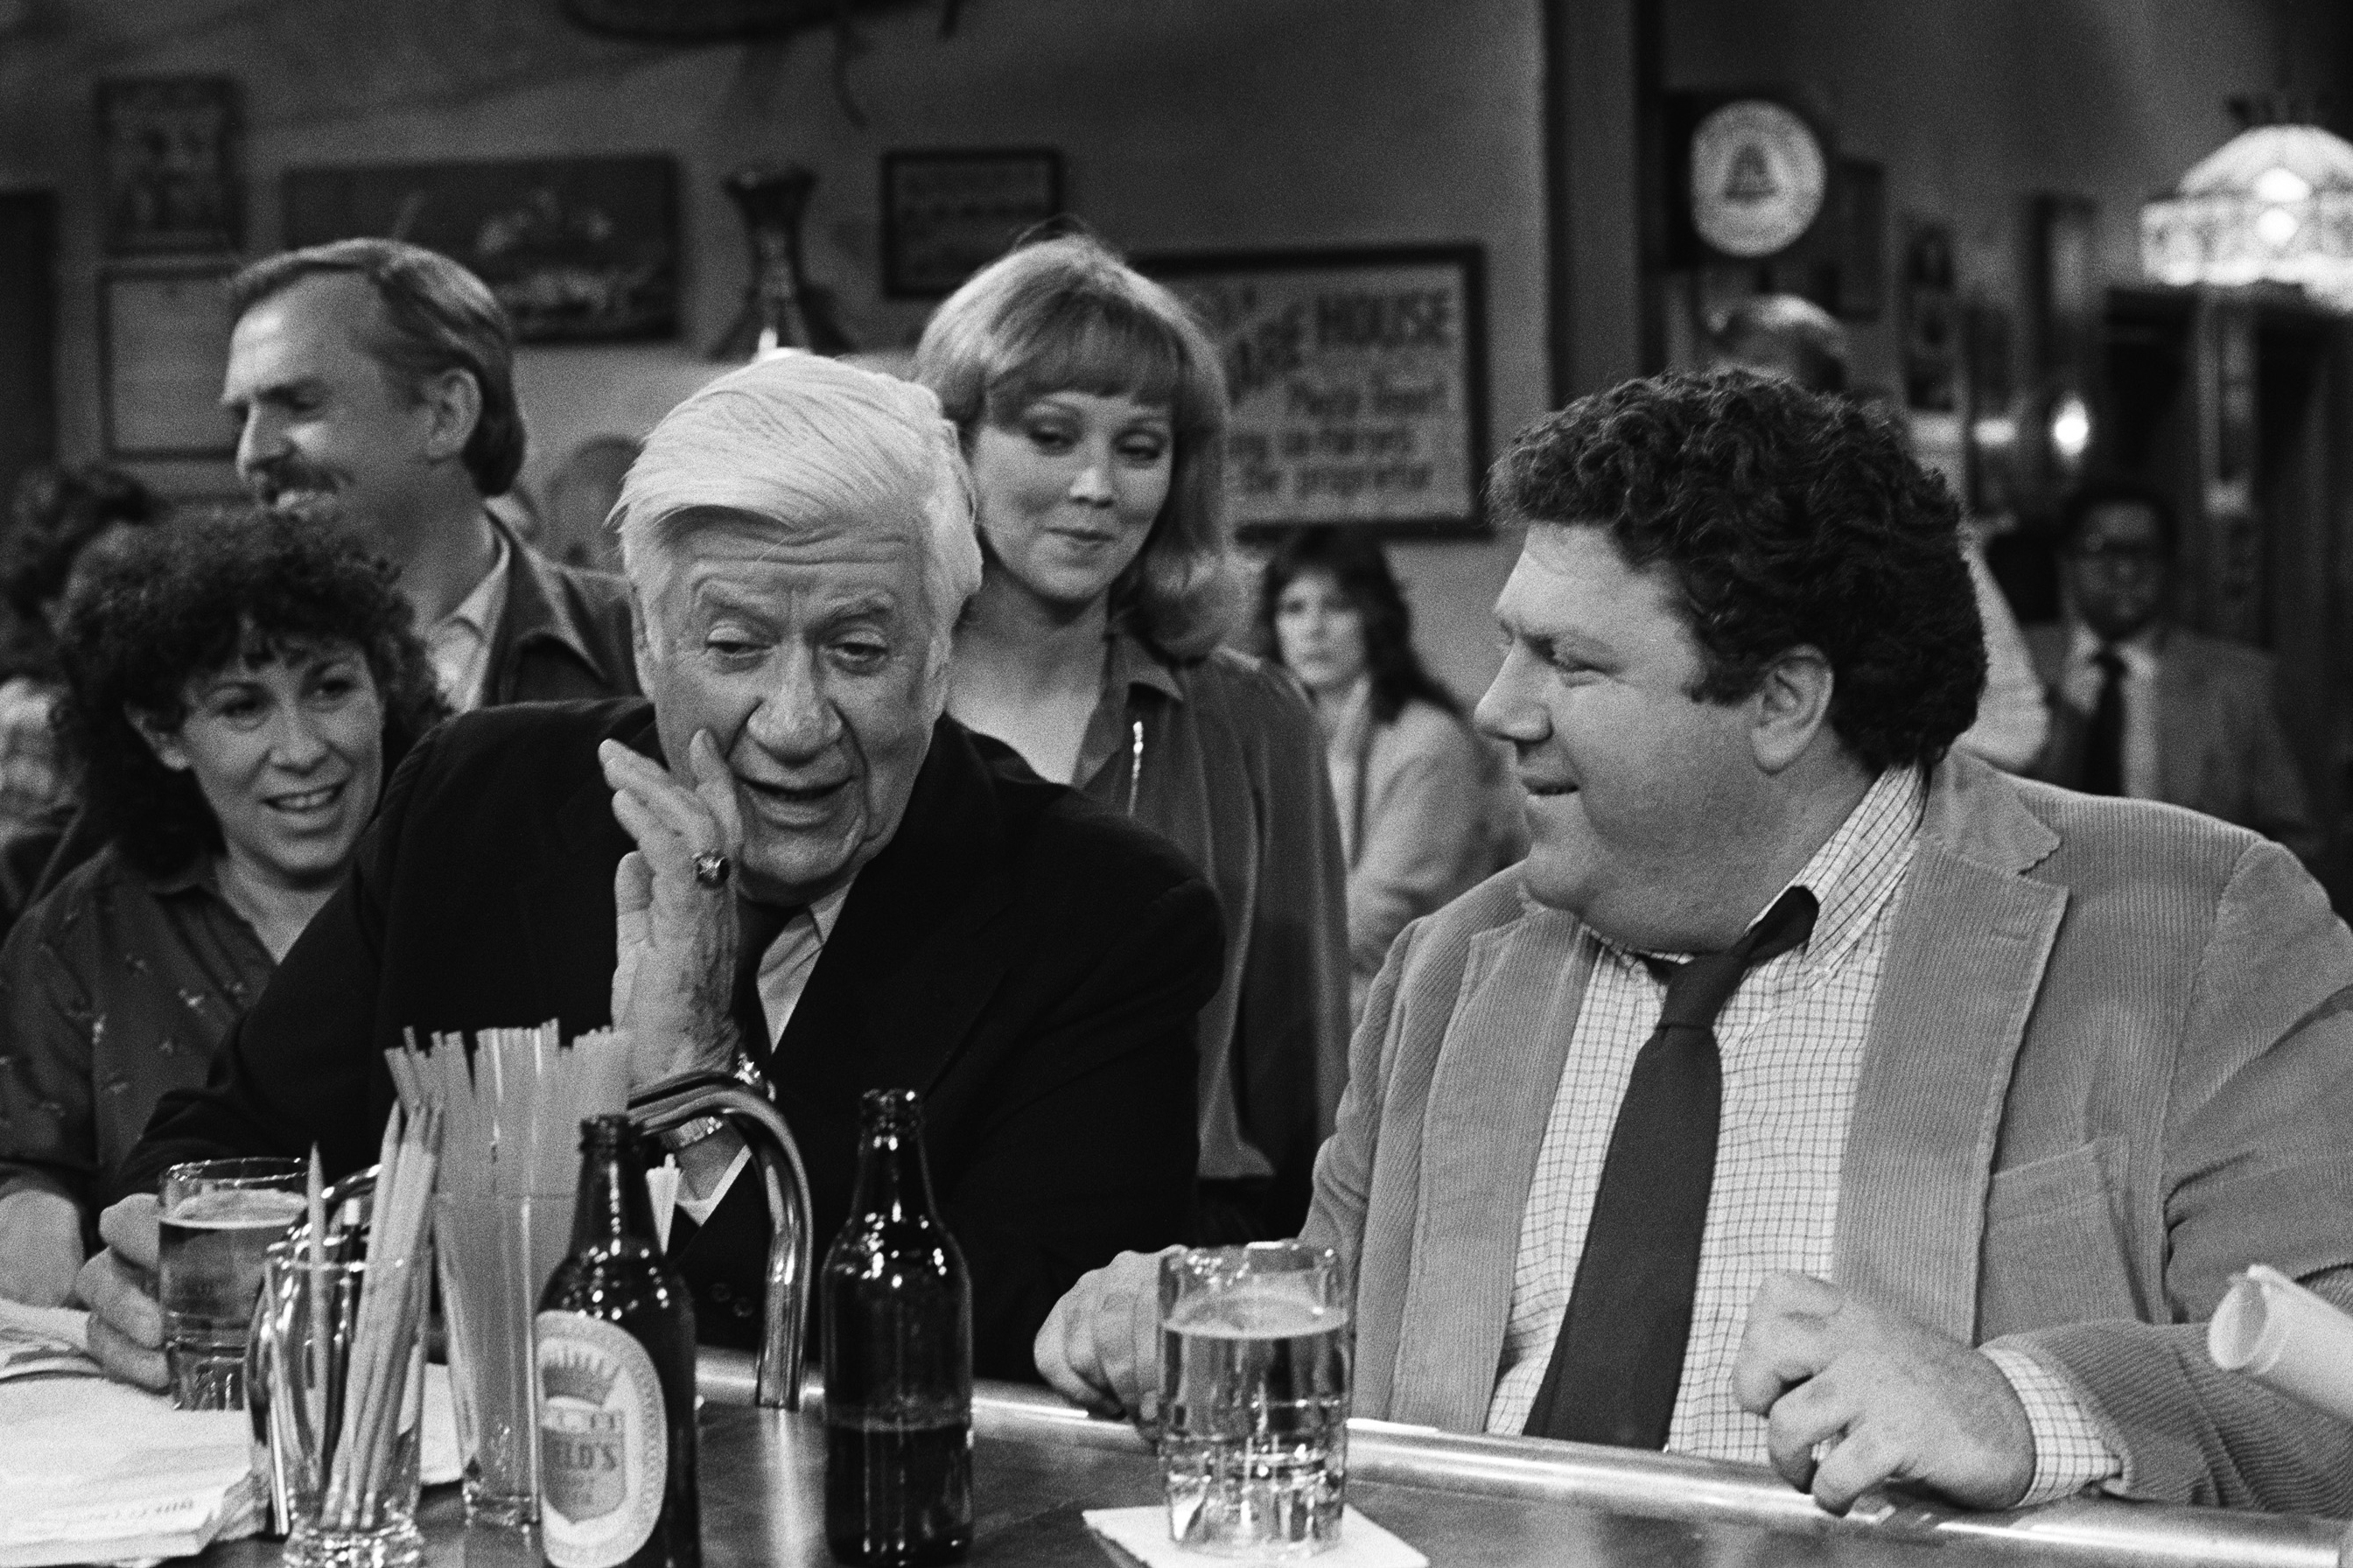 From left: Rhea Perlman, John Ratzenberger, former Speaker of the House Tip O'Neill, Shelley Long and George Wendt on Cheers, 1983.